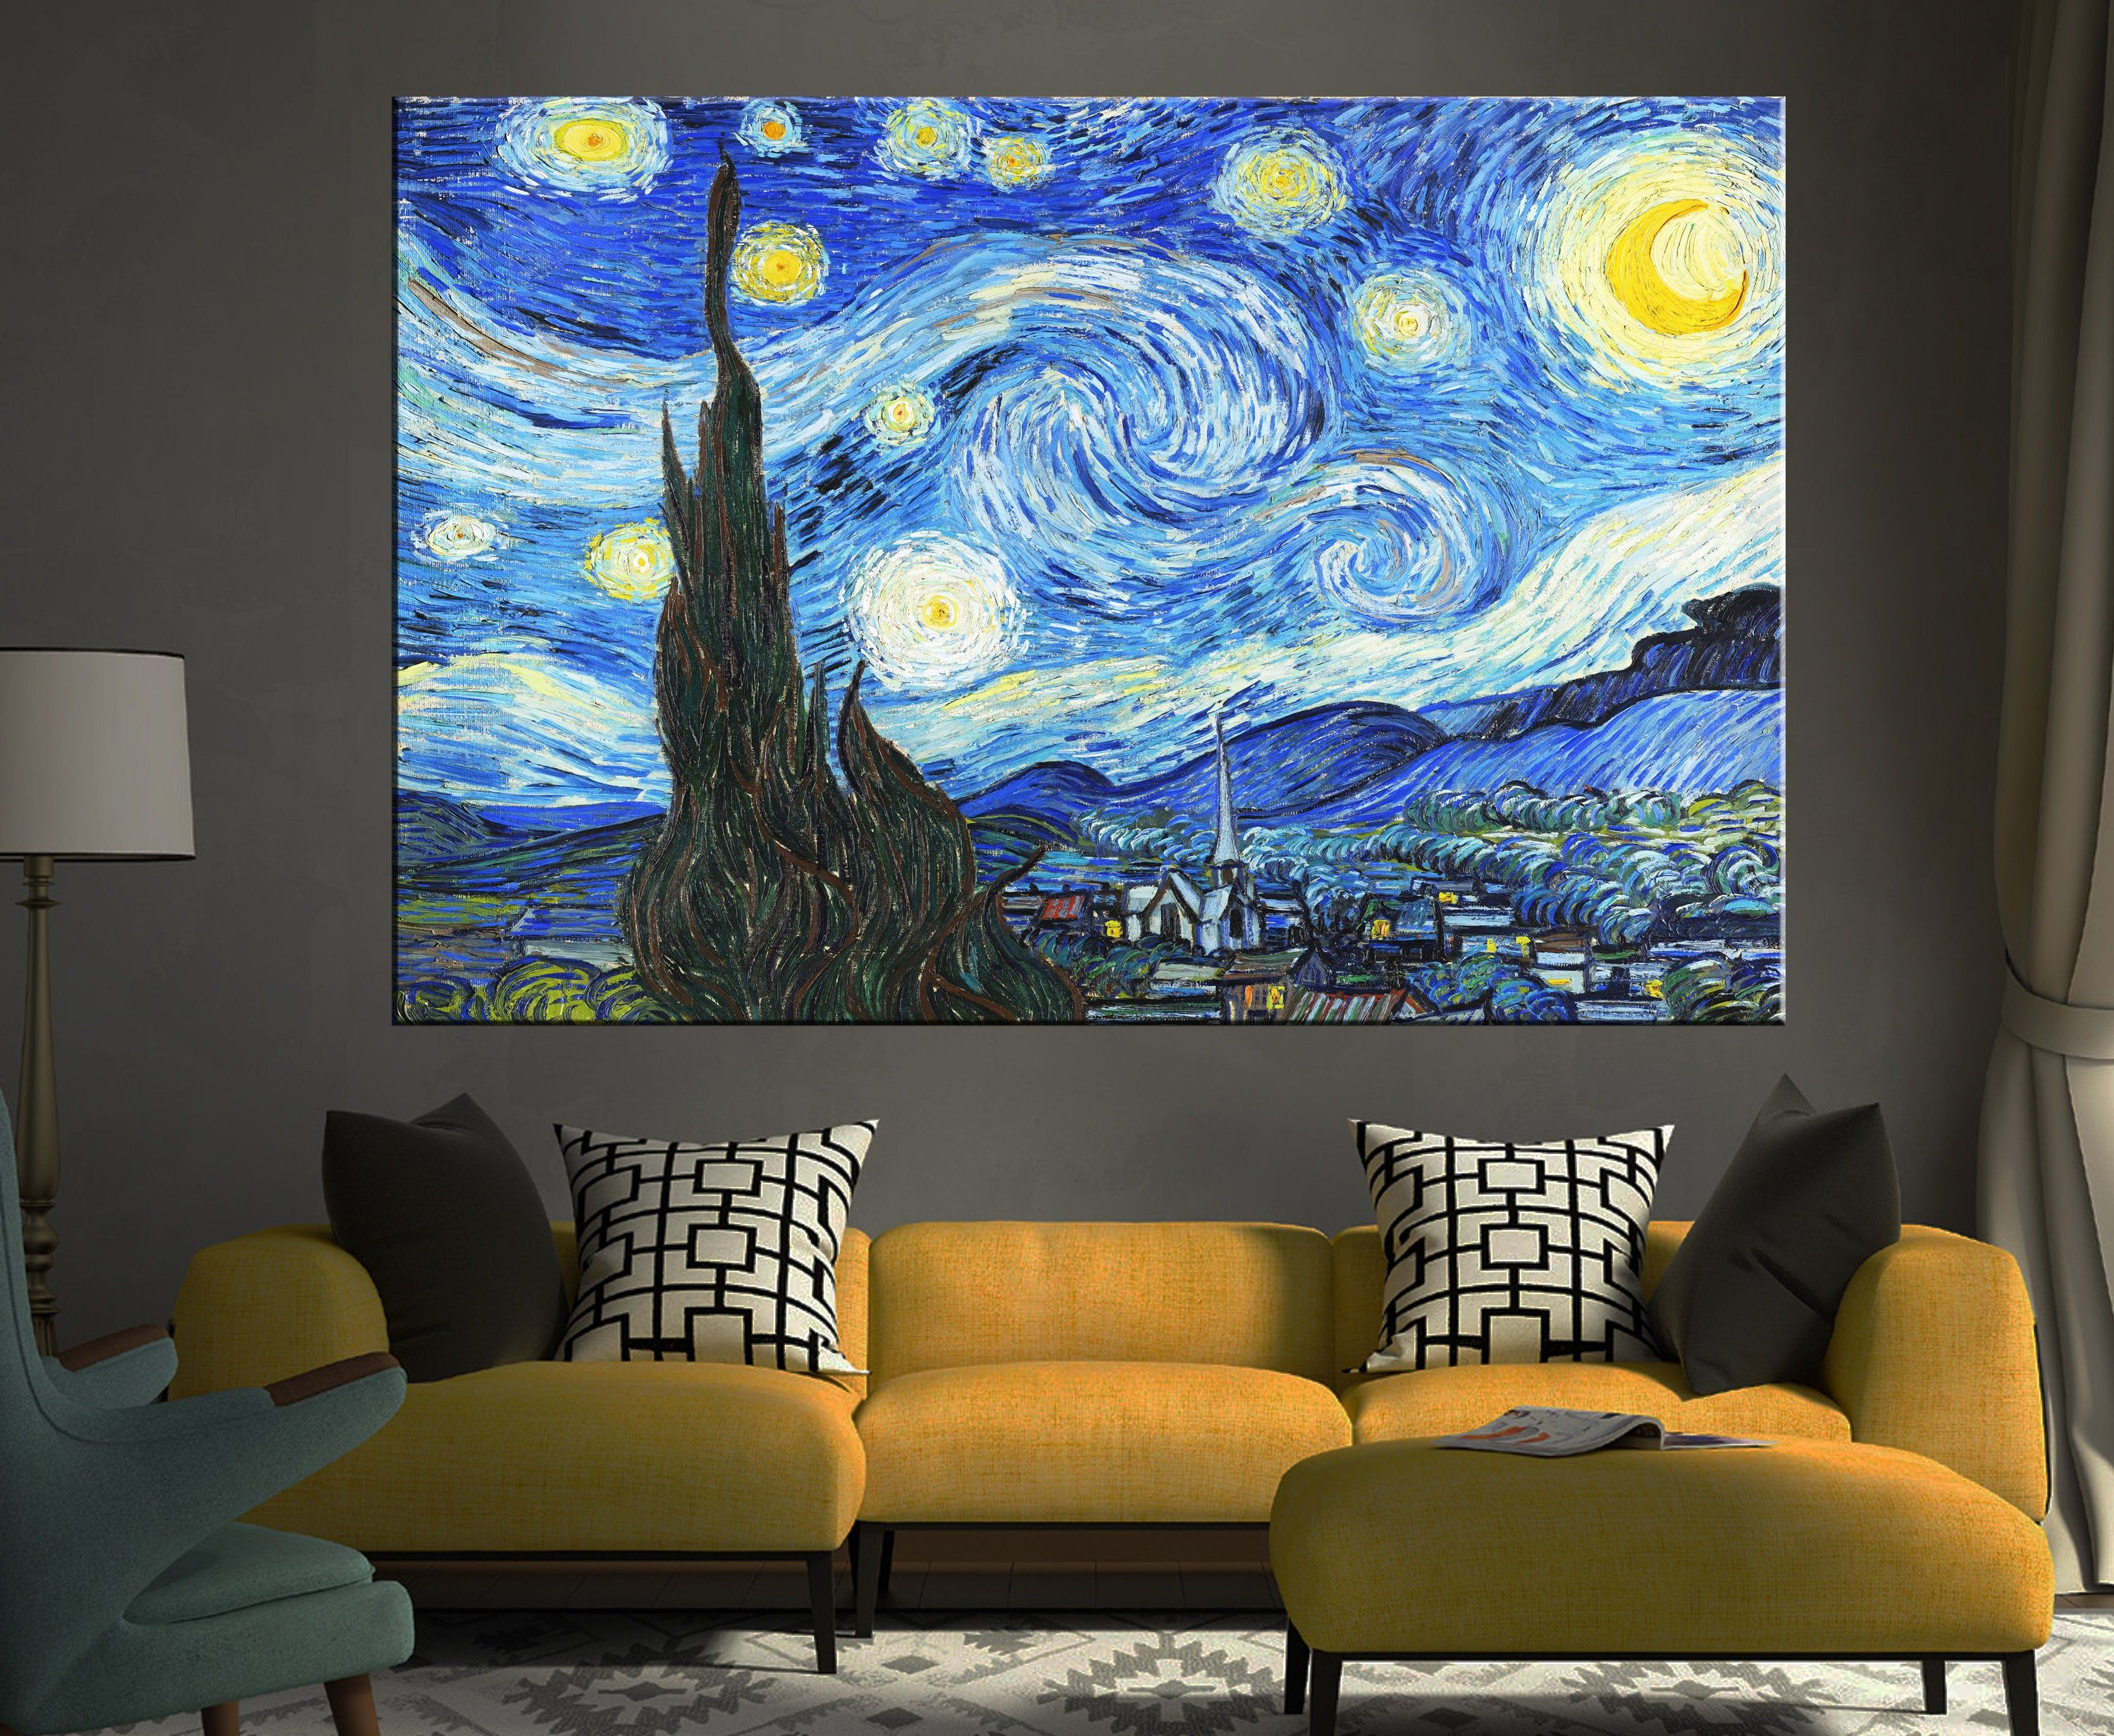 Discount Van Gogh Canvas Vincent Van Gogh Starry Night Etsy Starry Night Van Gogh Canvas Art Wall Decor Vincent Van Gogh